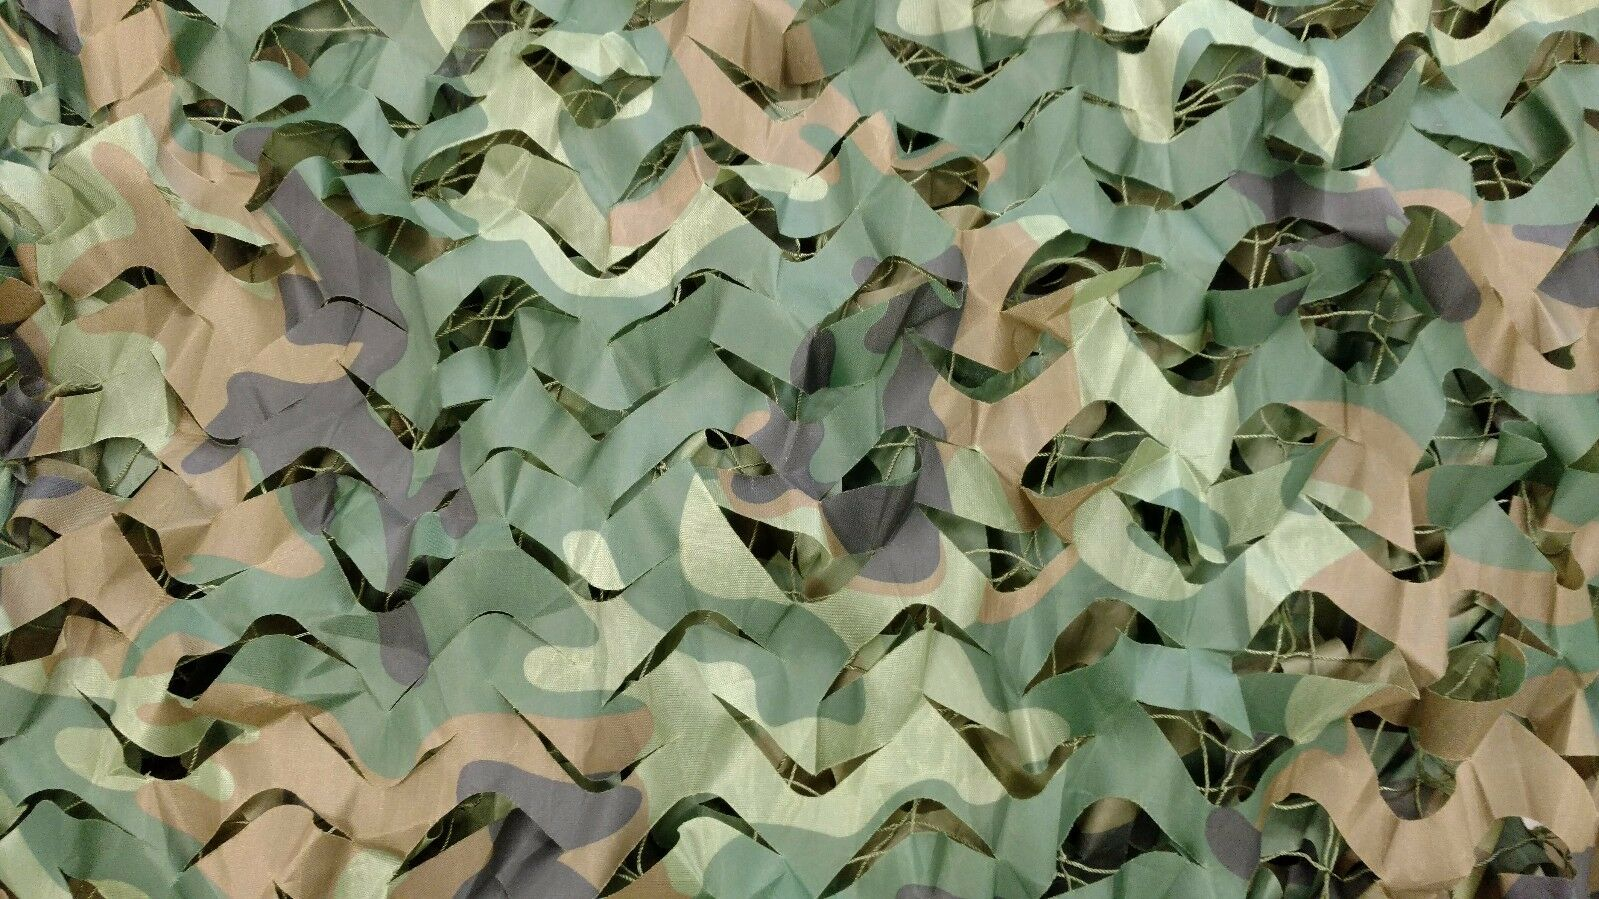 Woodland Camouflage Netting Military Army Camo Hunting Cover Net  HUGE SALE